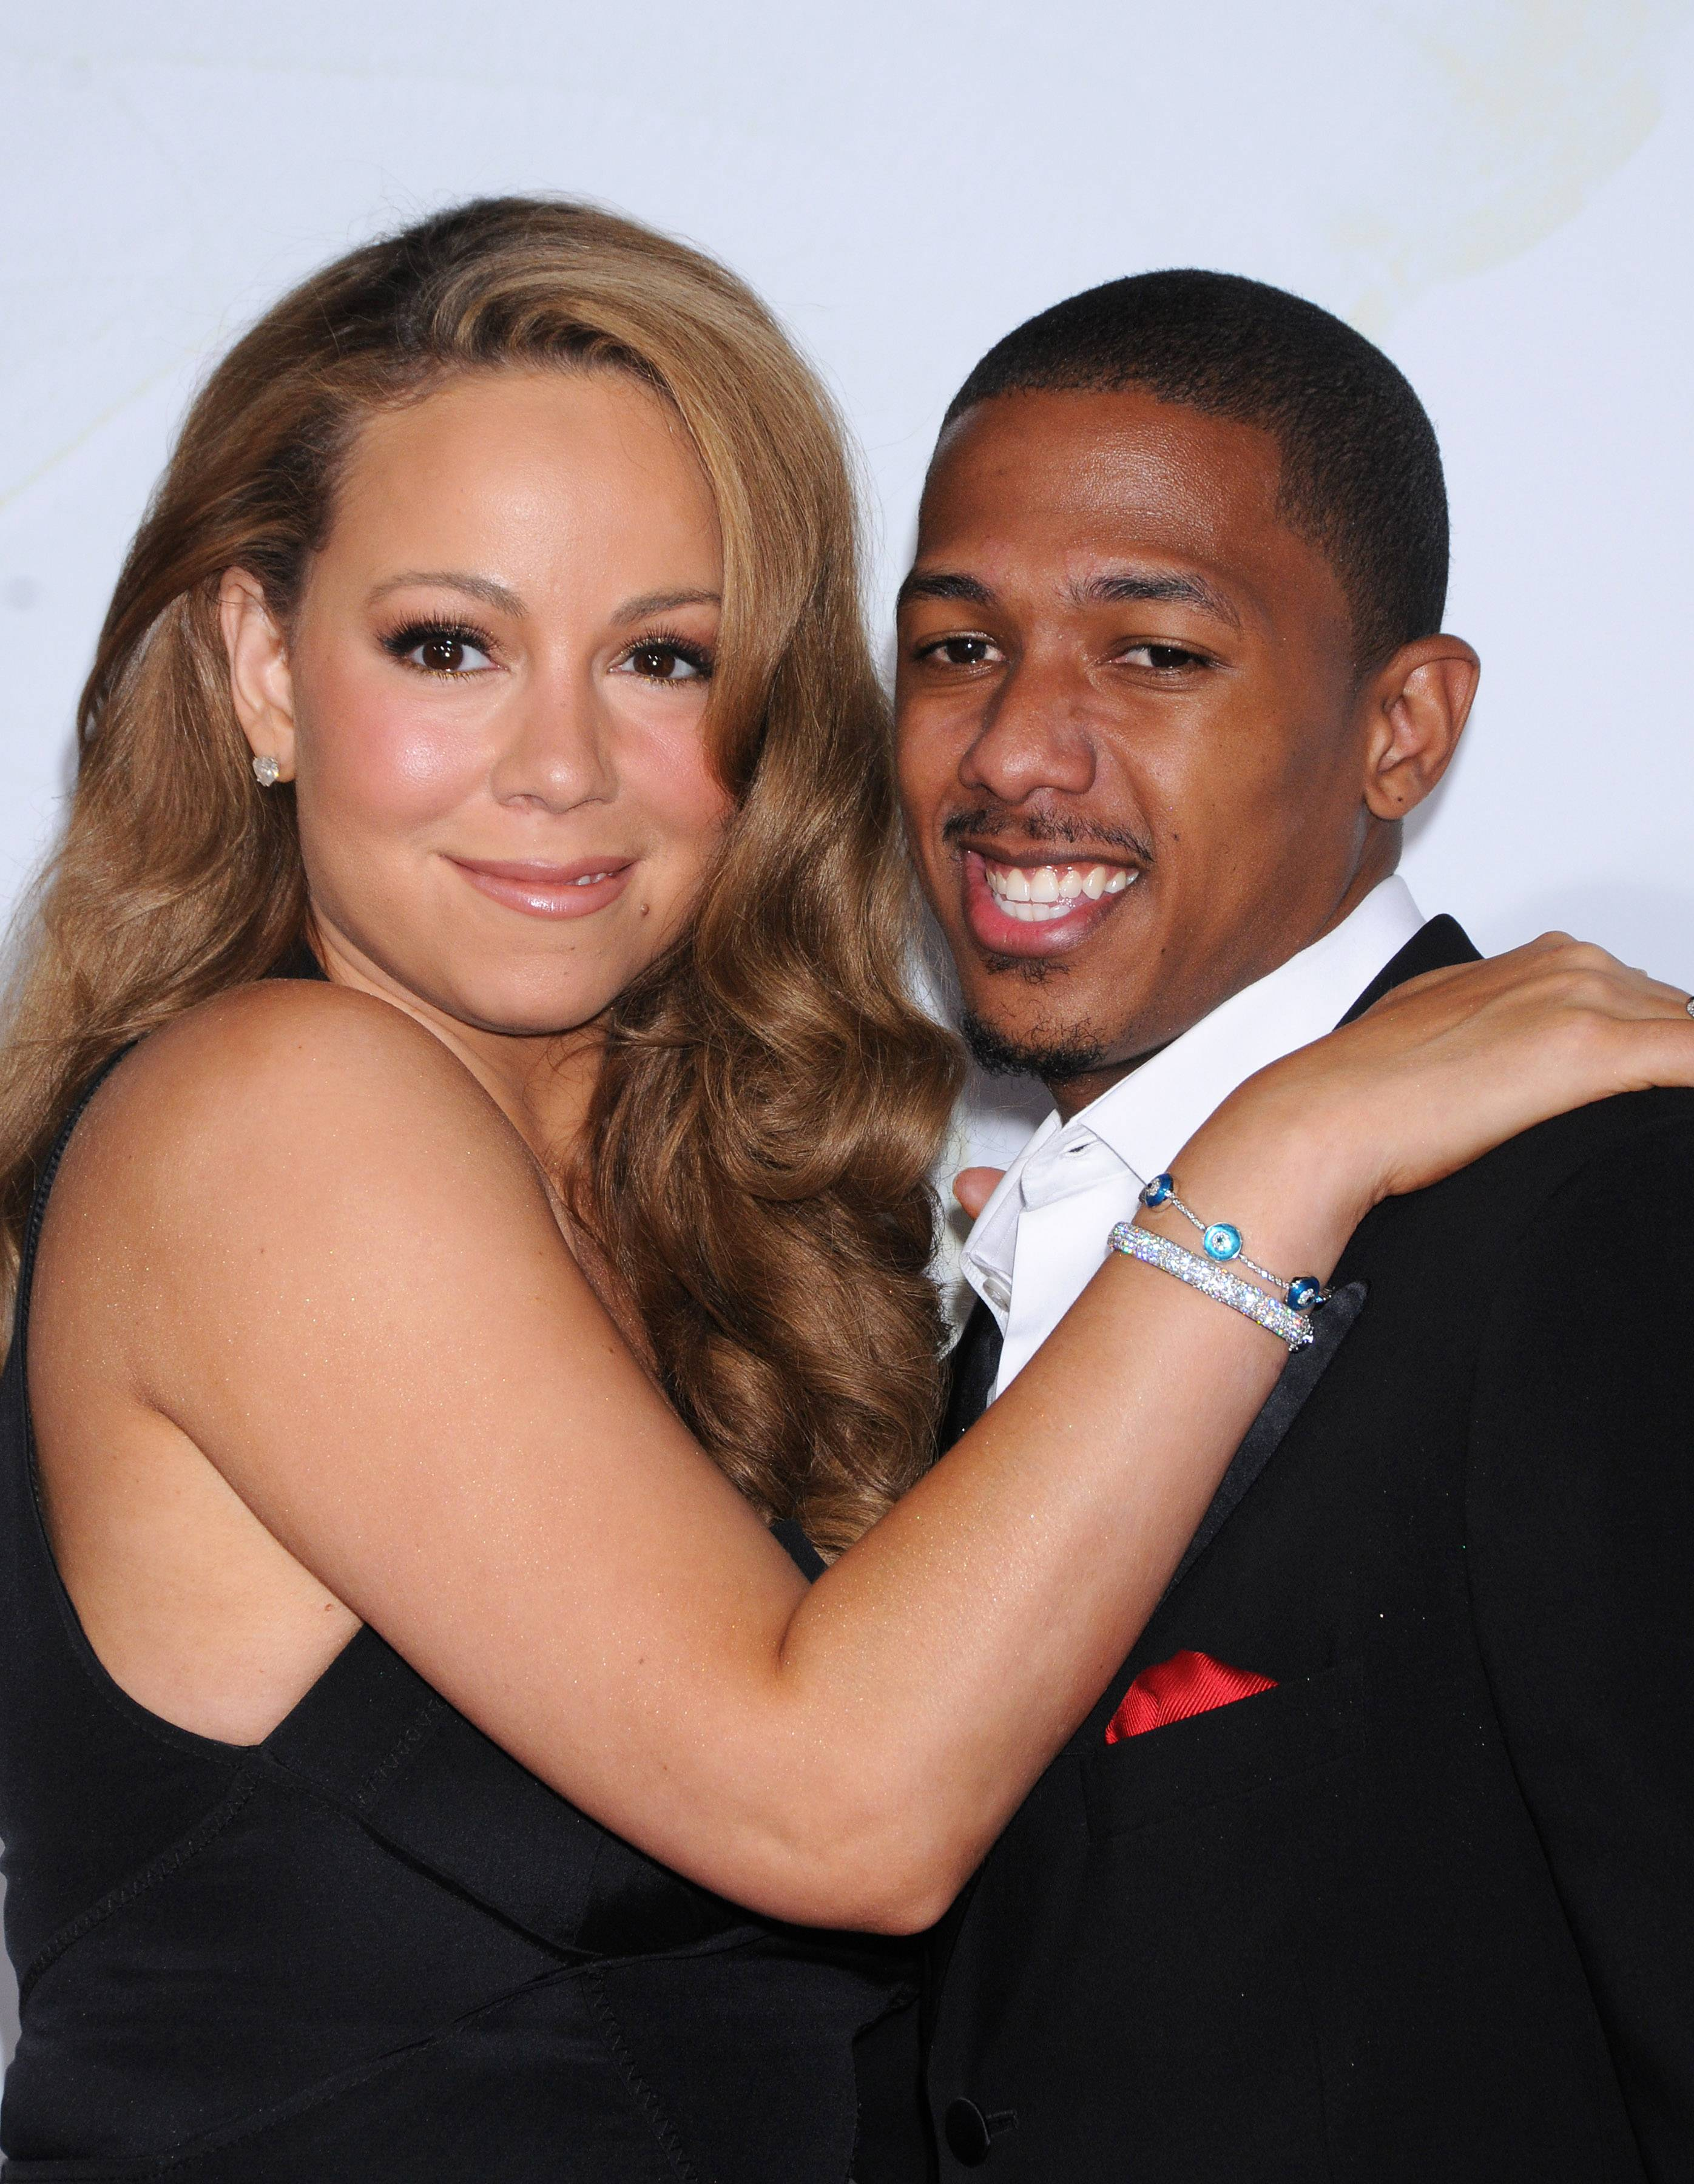 0311-shows-lets-stay-opposites-nick-cannon-mariah-1.jpg